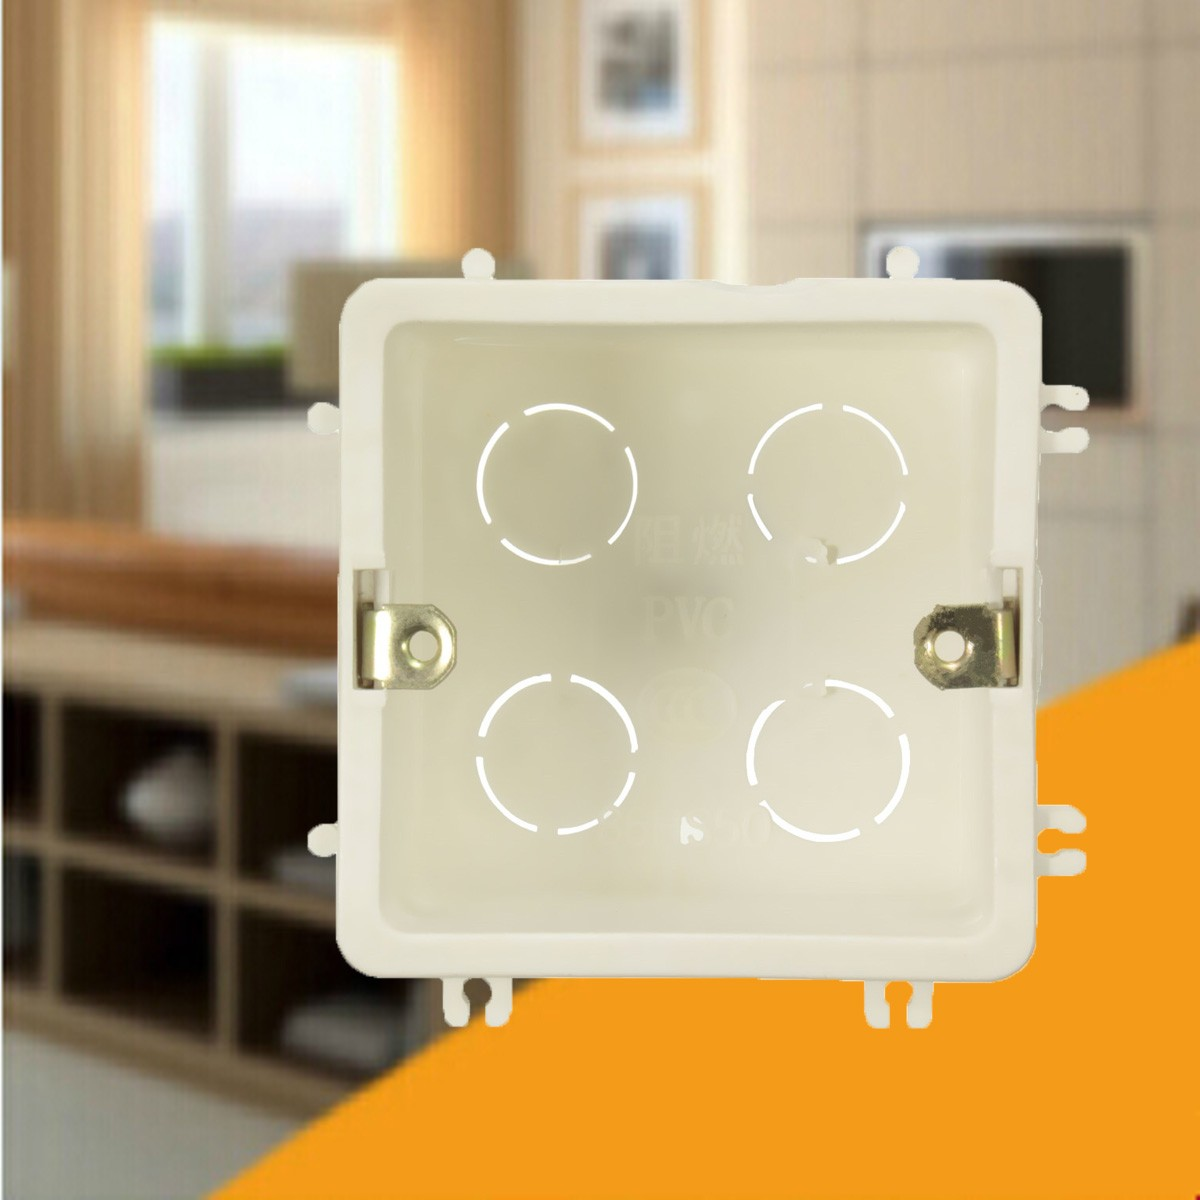 цена на 1pcs 86*86mm Cassette Universal White Wall Mounting Box for Wall Switch and Plastic Enclosure Socket Back Box Outlet 86mm